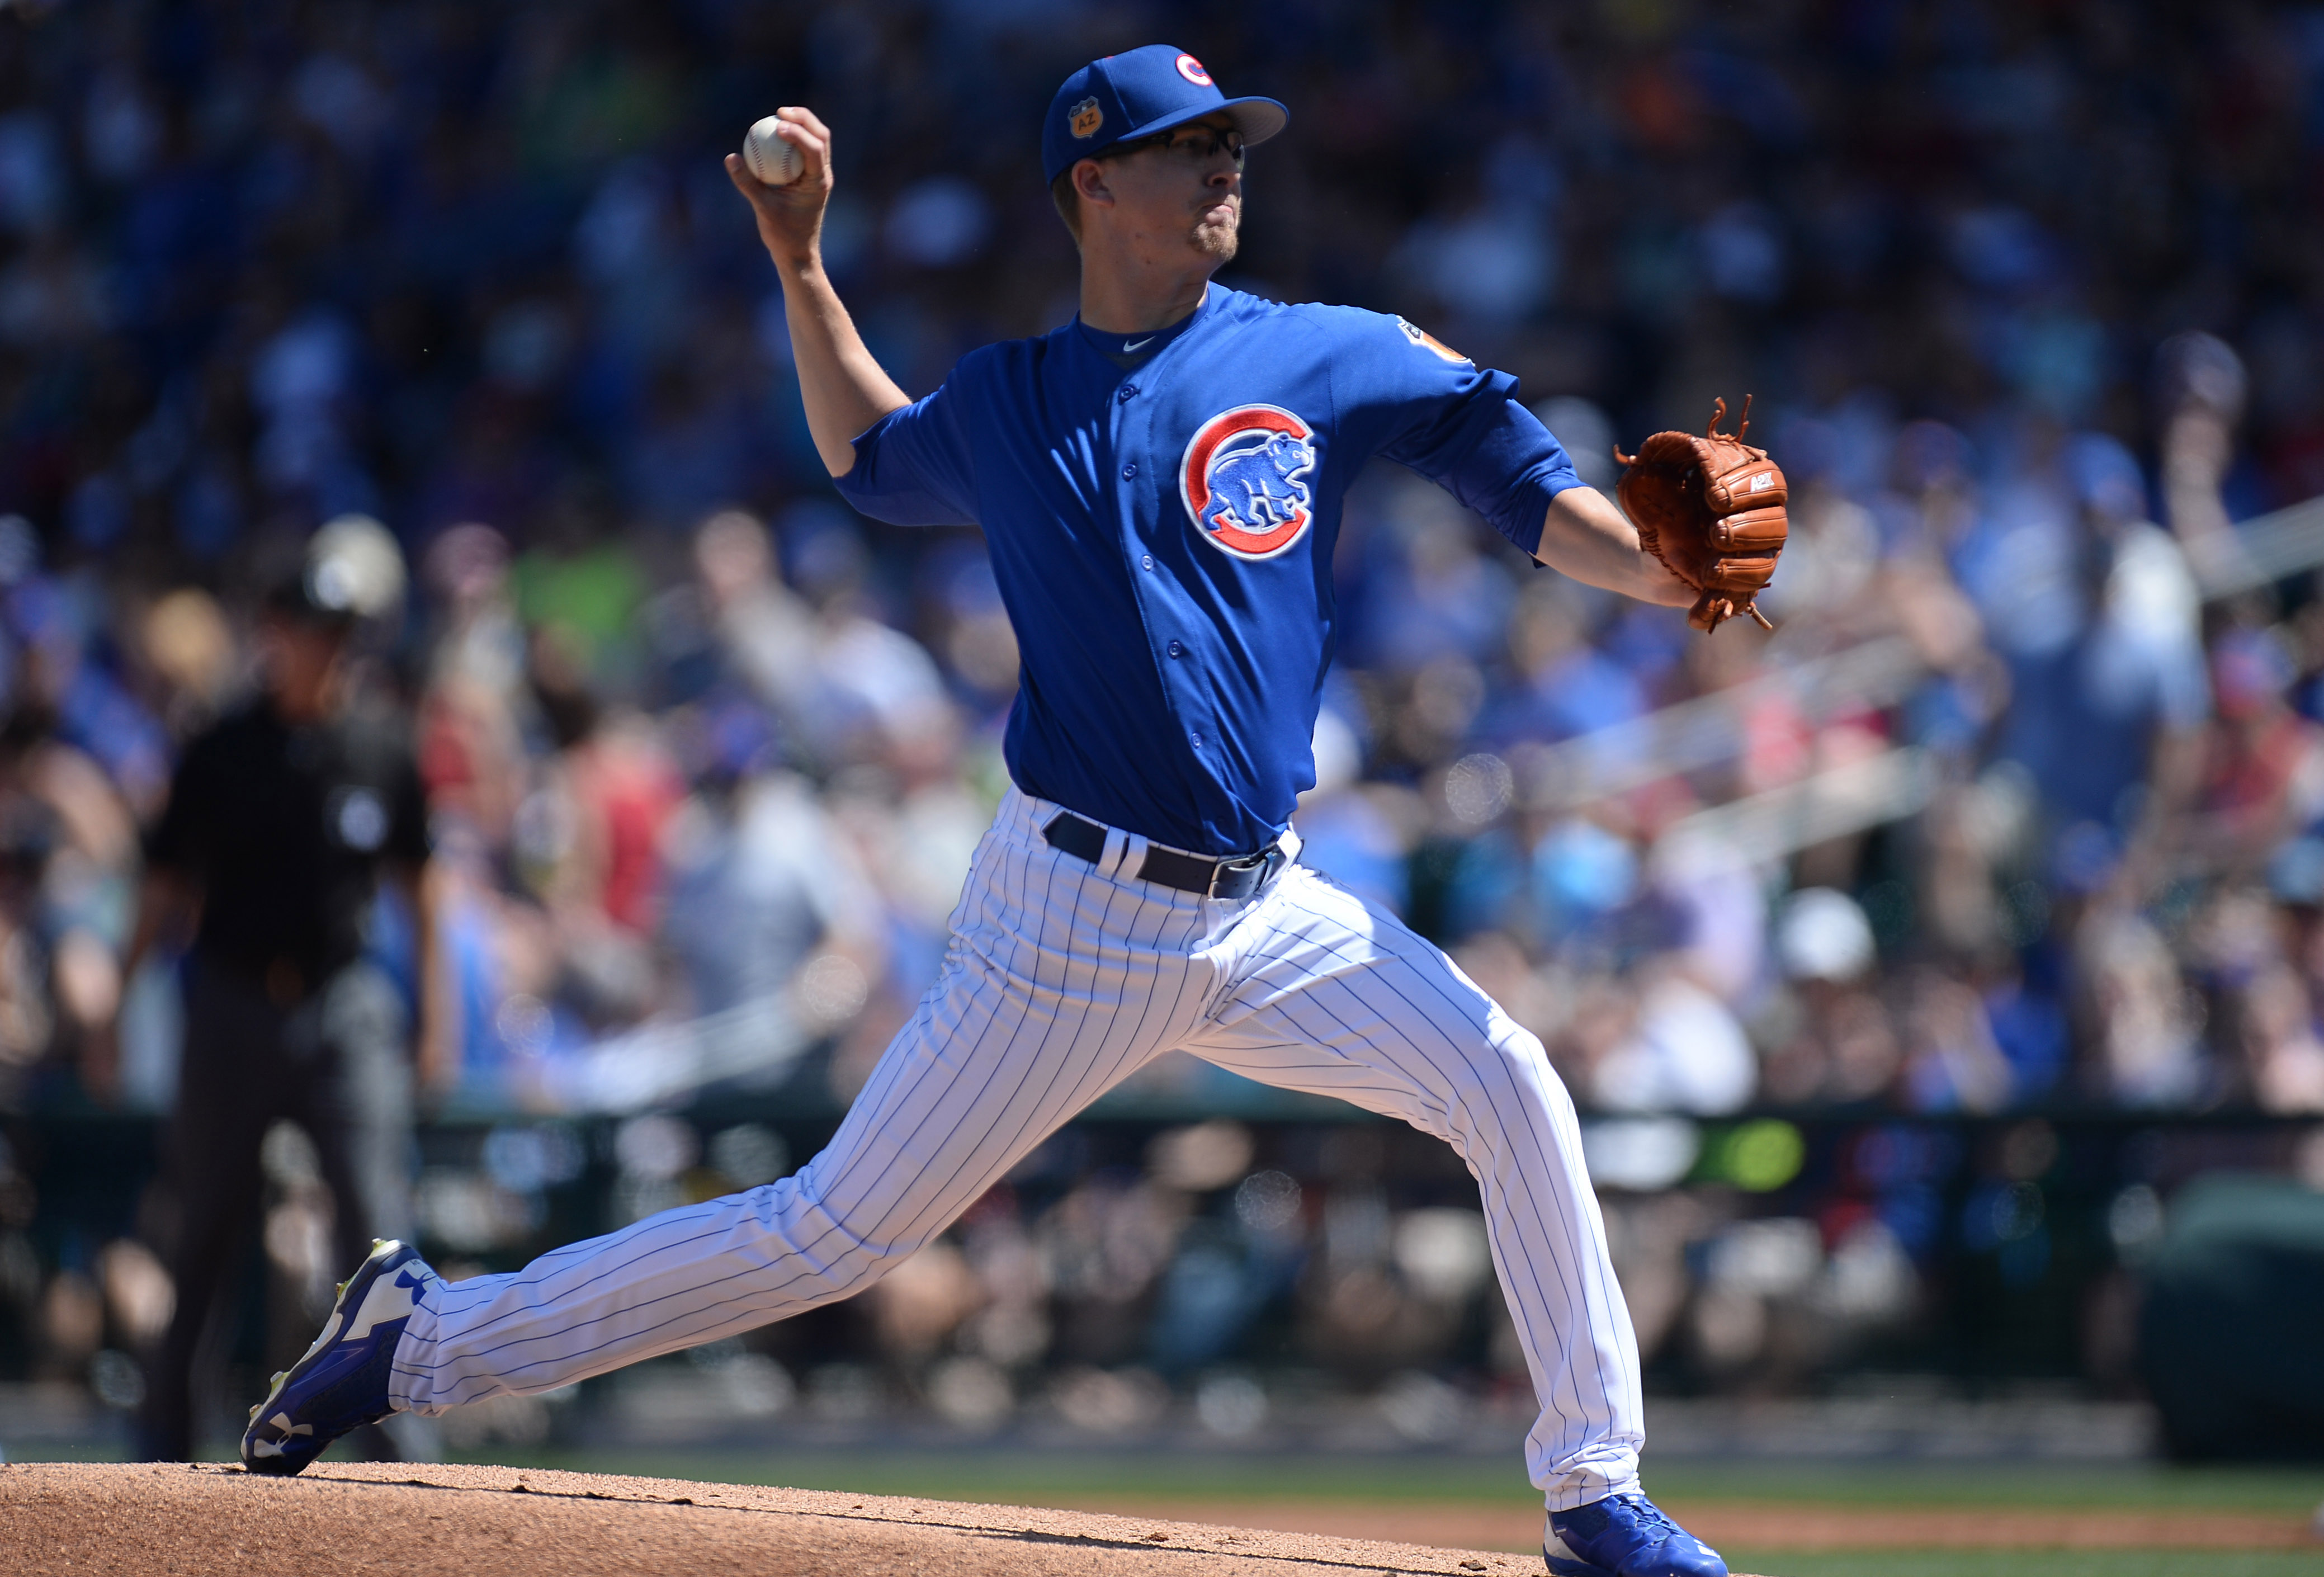 Chicago Cubs: Candidates for the Cubs' 2018 starting rotation